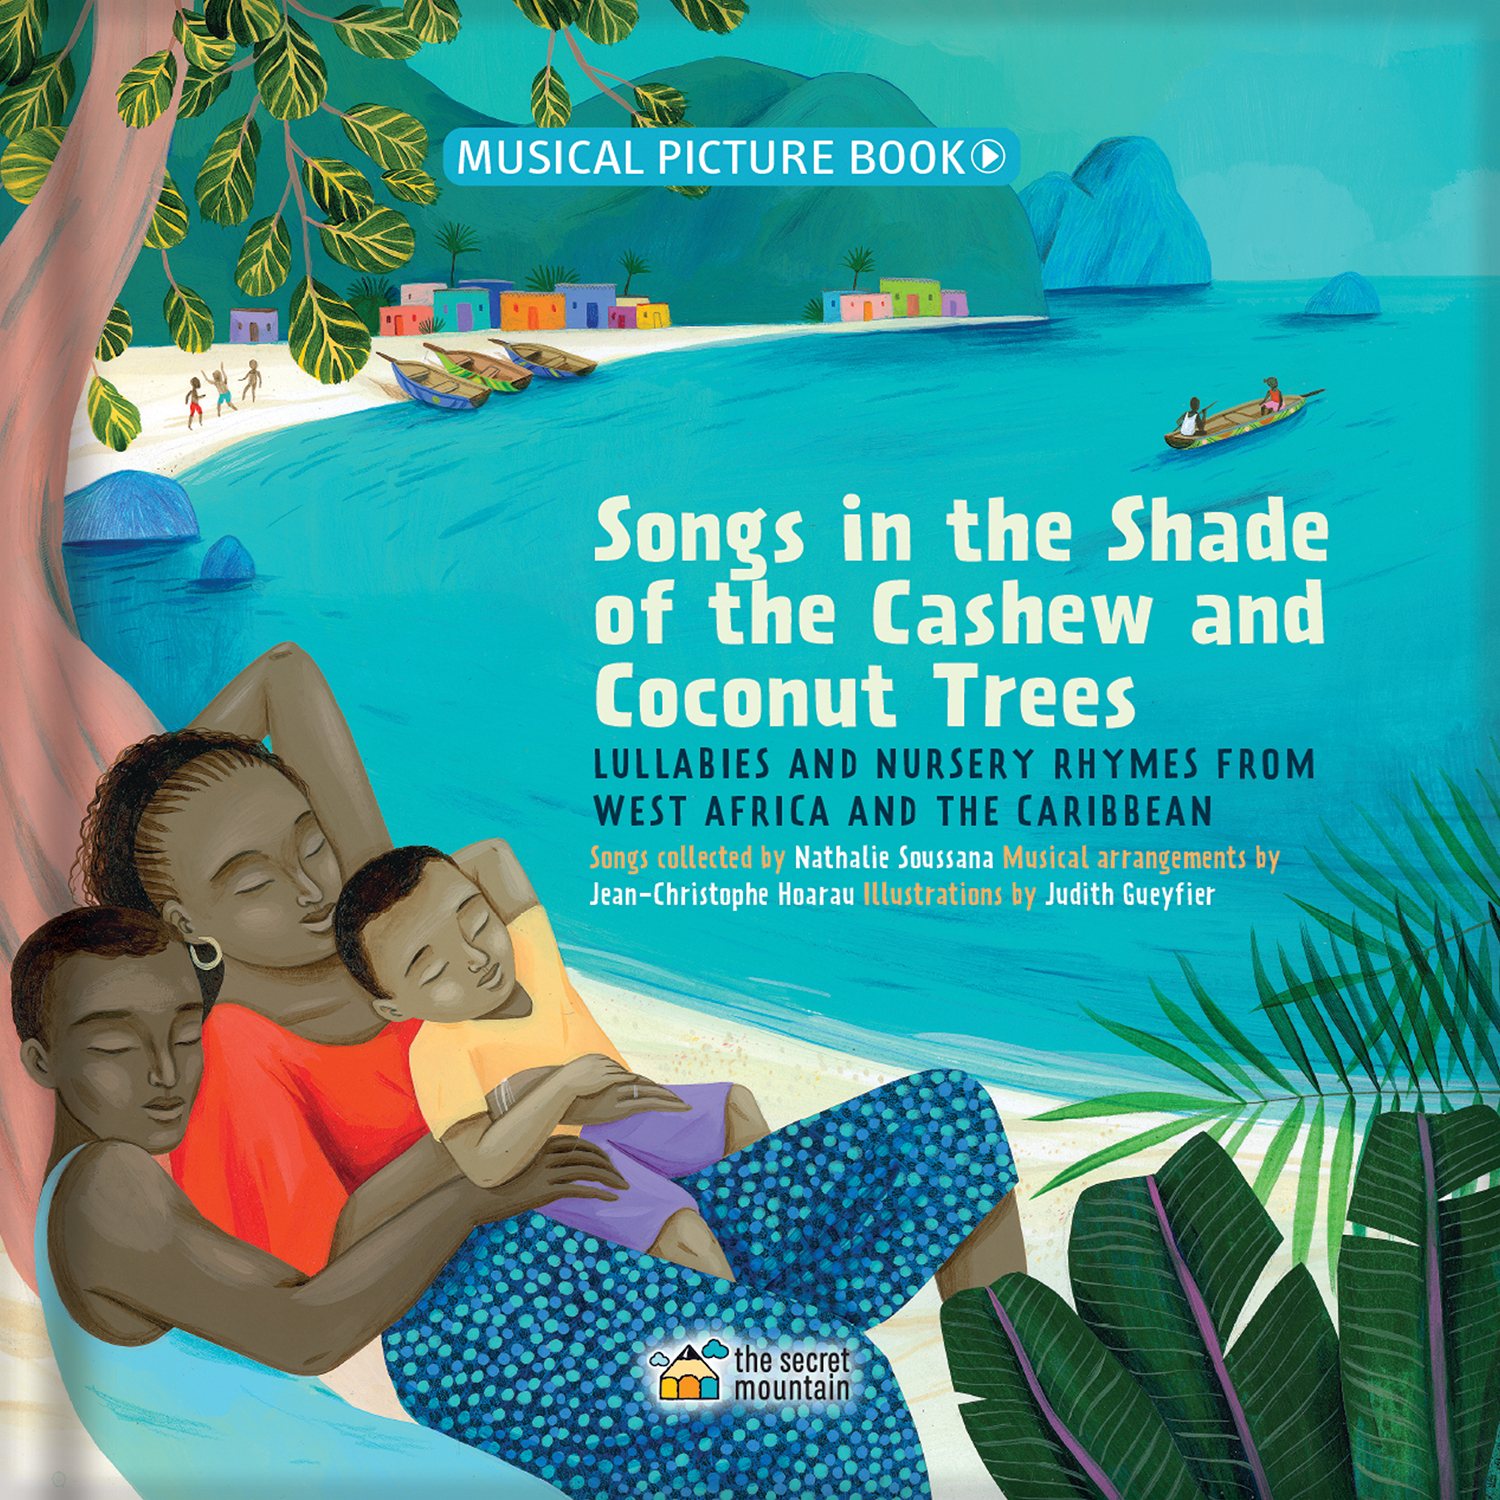 Songs in the Shade of the Cashew and Coconut Trees: Lullabies and Nursery Rhyme from West Africa and the Caribbean